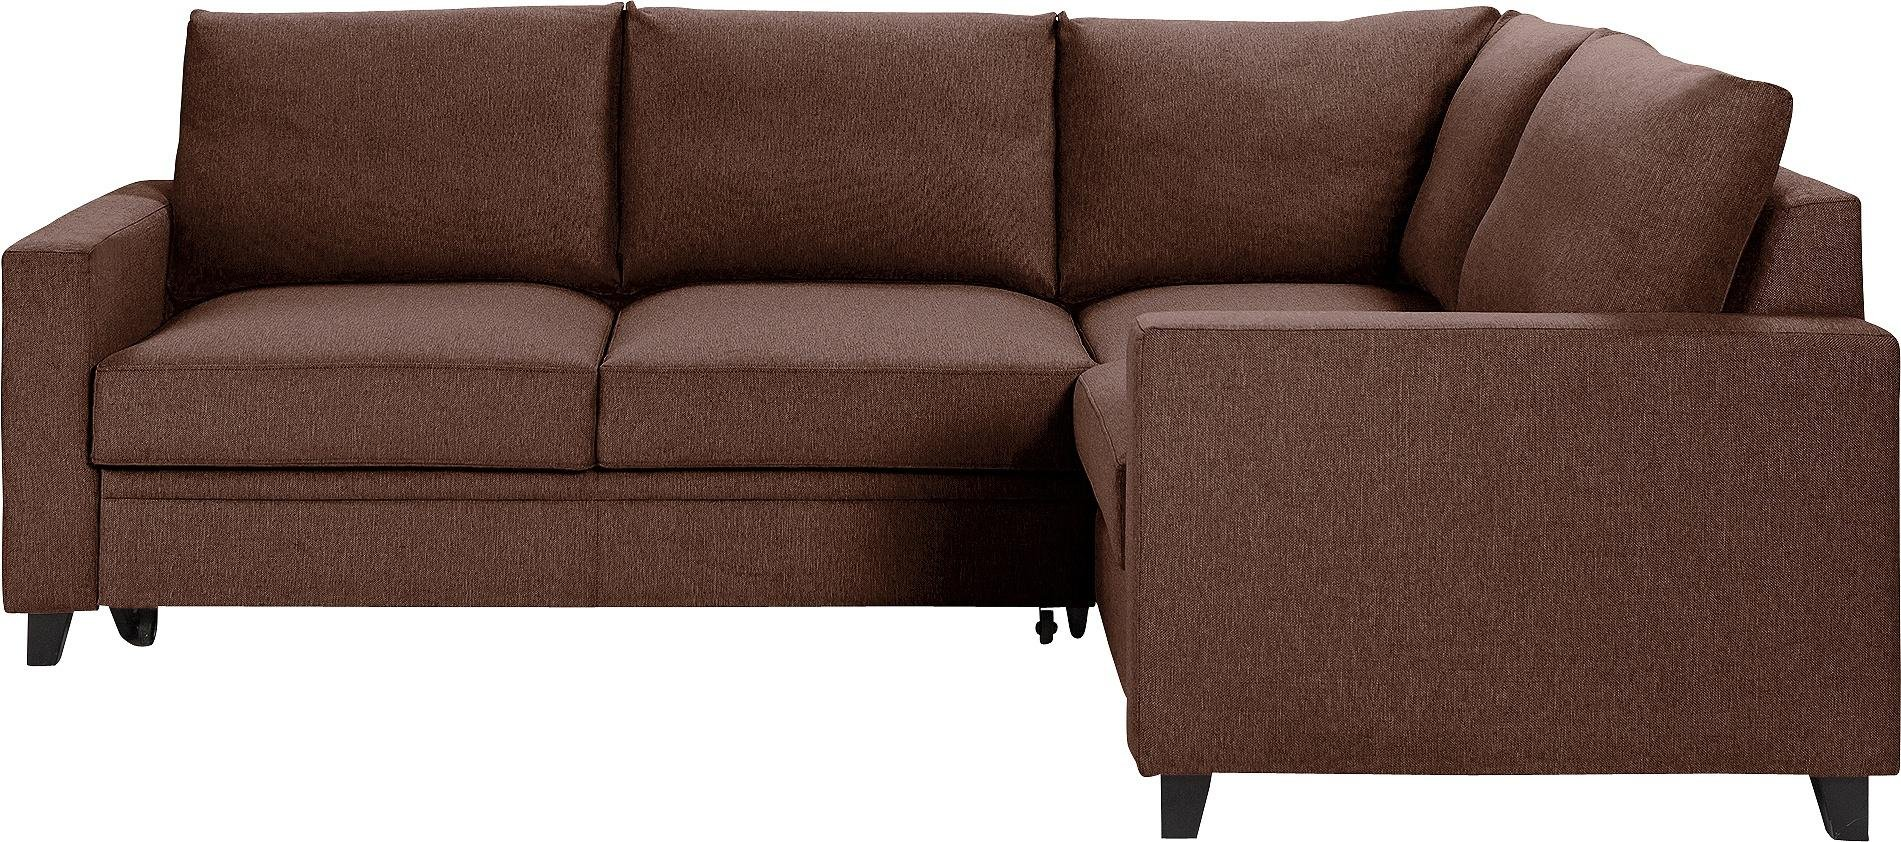 Hygena Seattle Fabric Right Hand Corner Sofa Bed - Brown